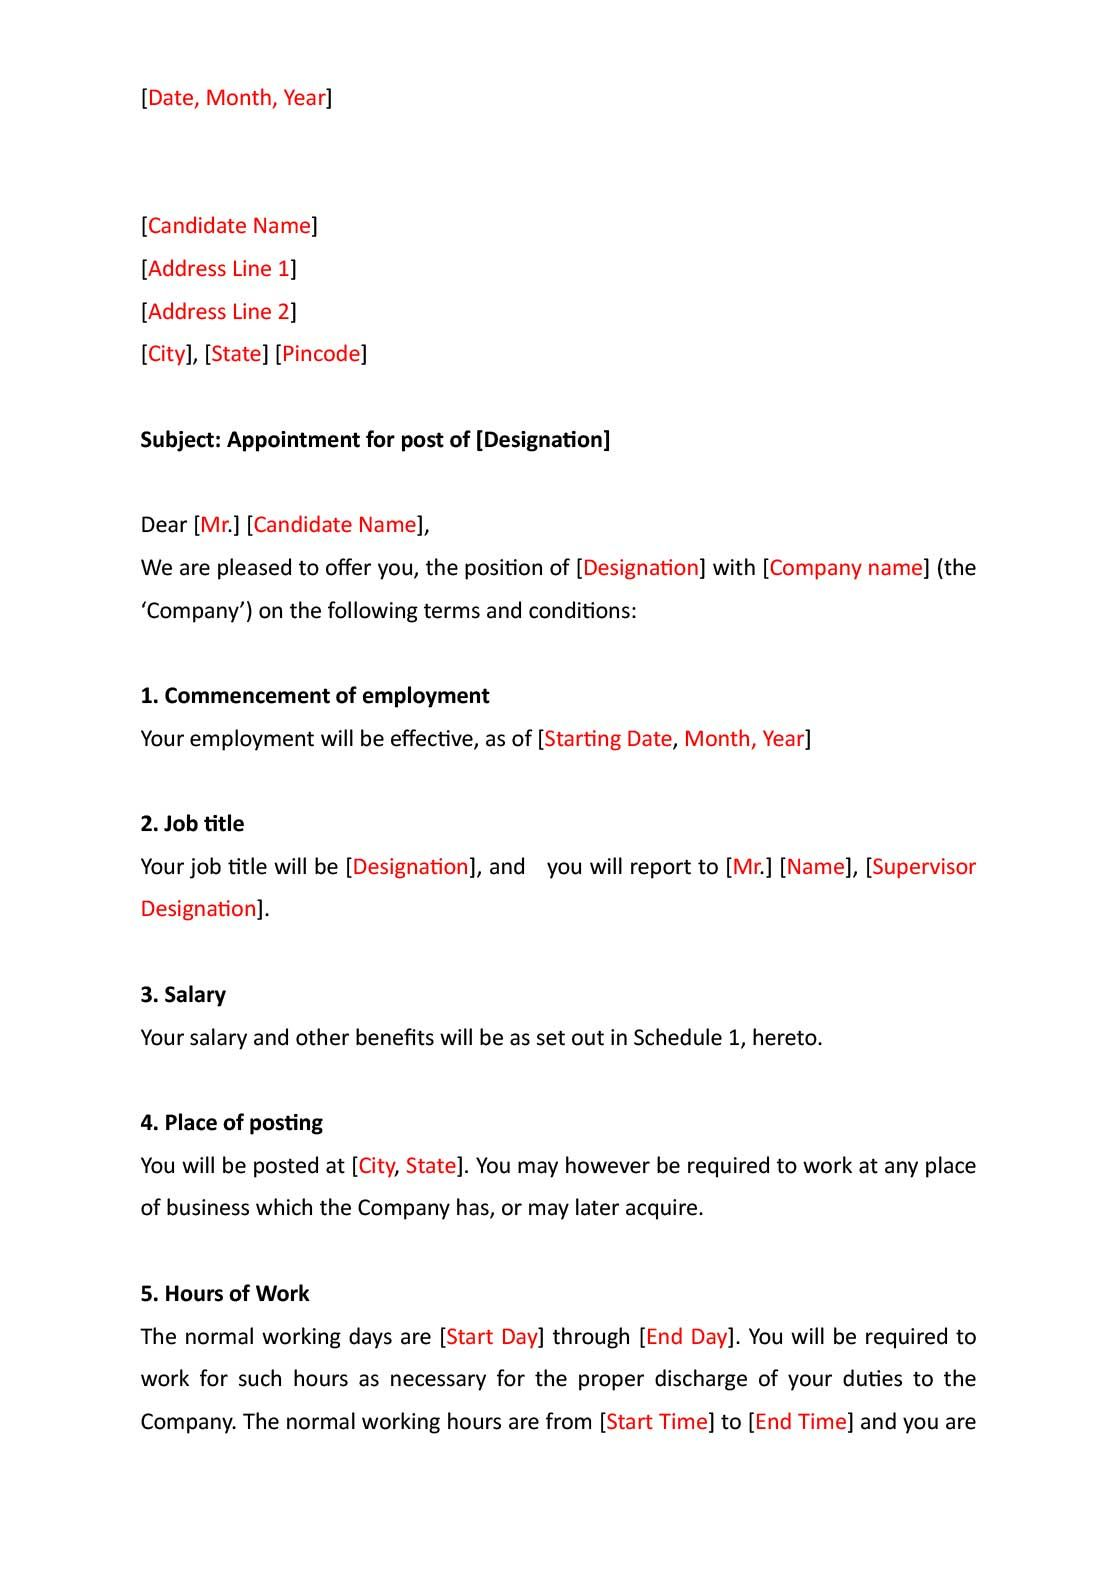 ngo appointment letter format hindi template doc job offer ...